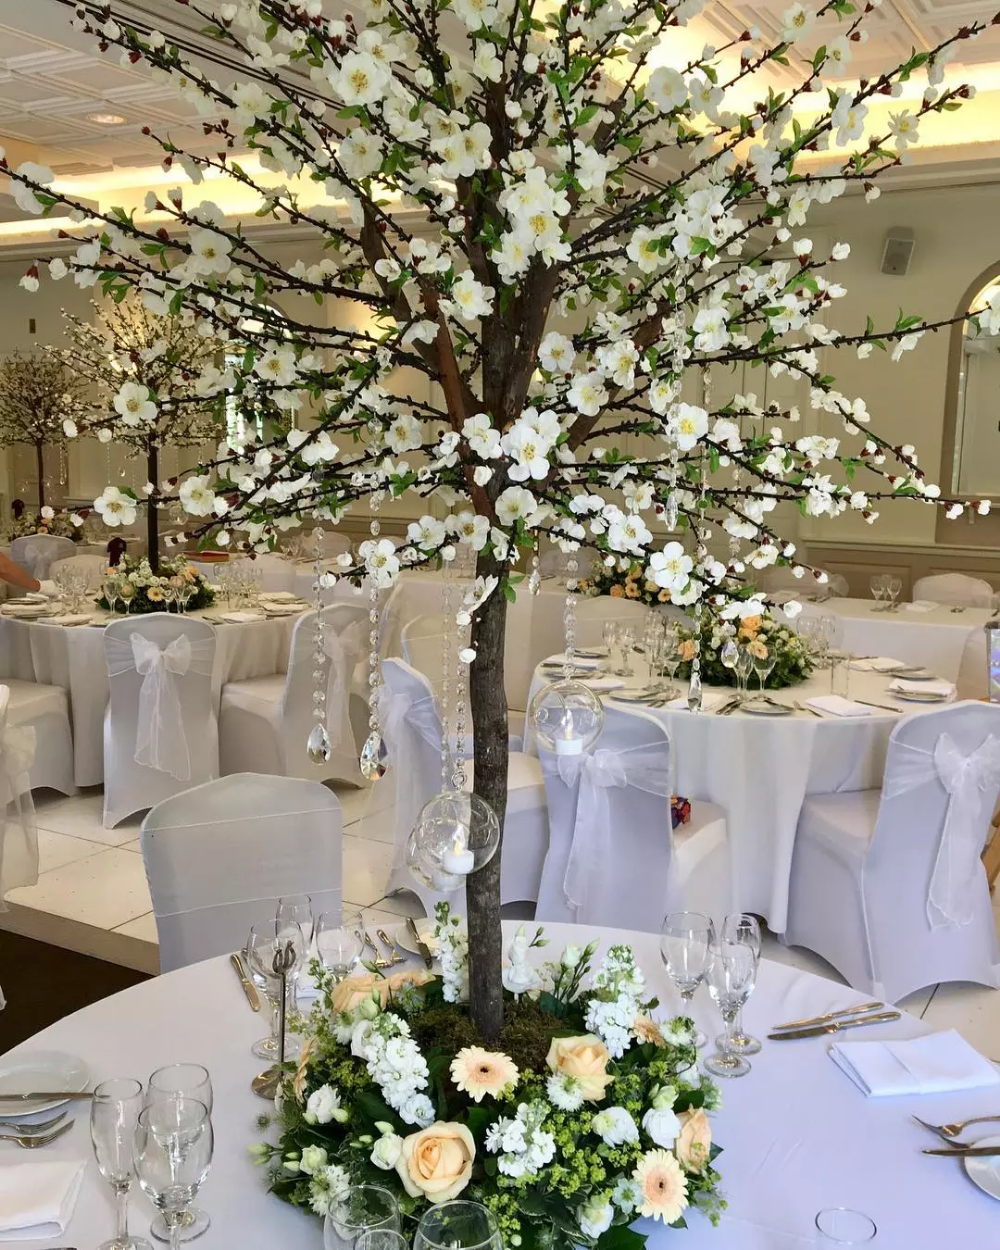 Artifical Cherry Blossom Tree With Green Leaves Tree Centerpieces Wedding Tree View Artific Tree Centerpieces Tree Wedding Centerpieces Blossom Tree Wedding